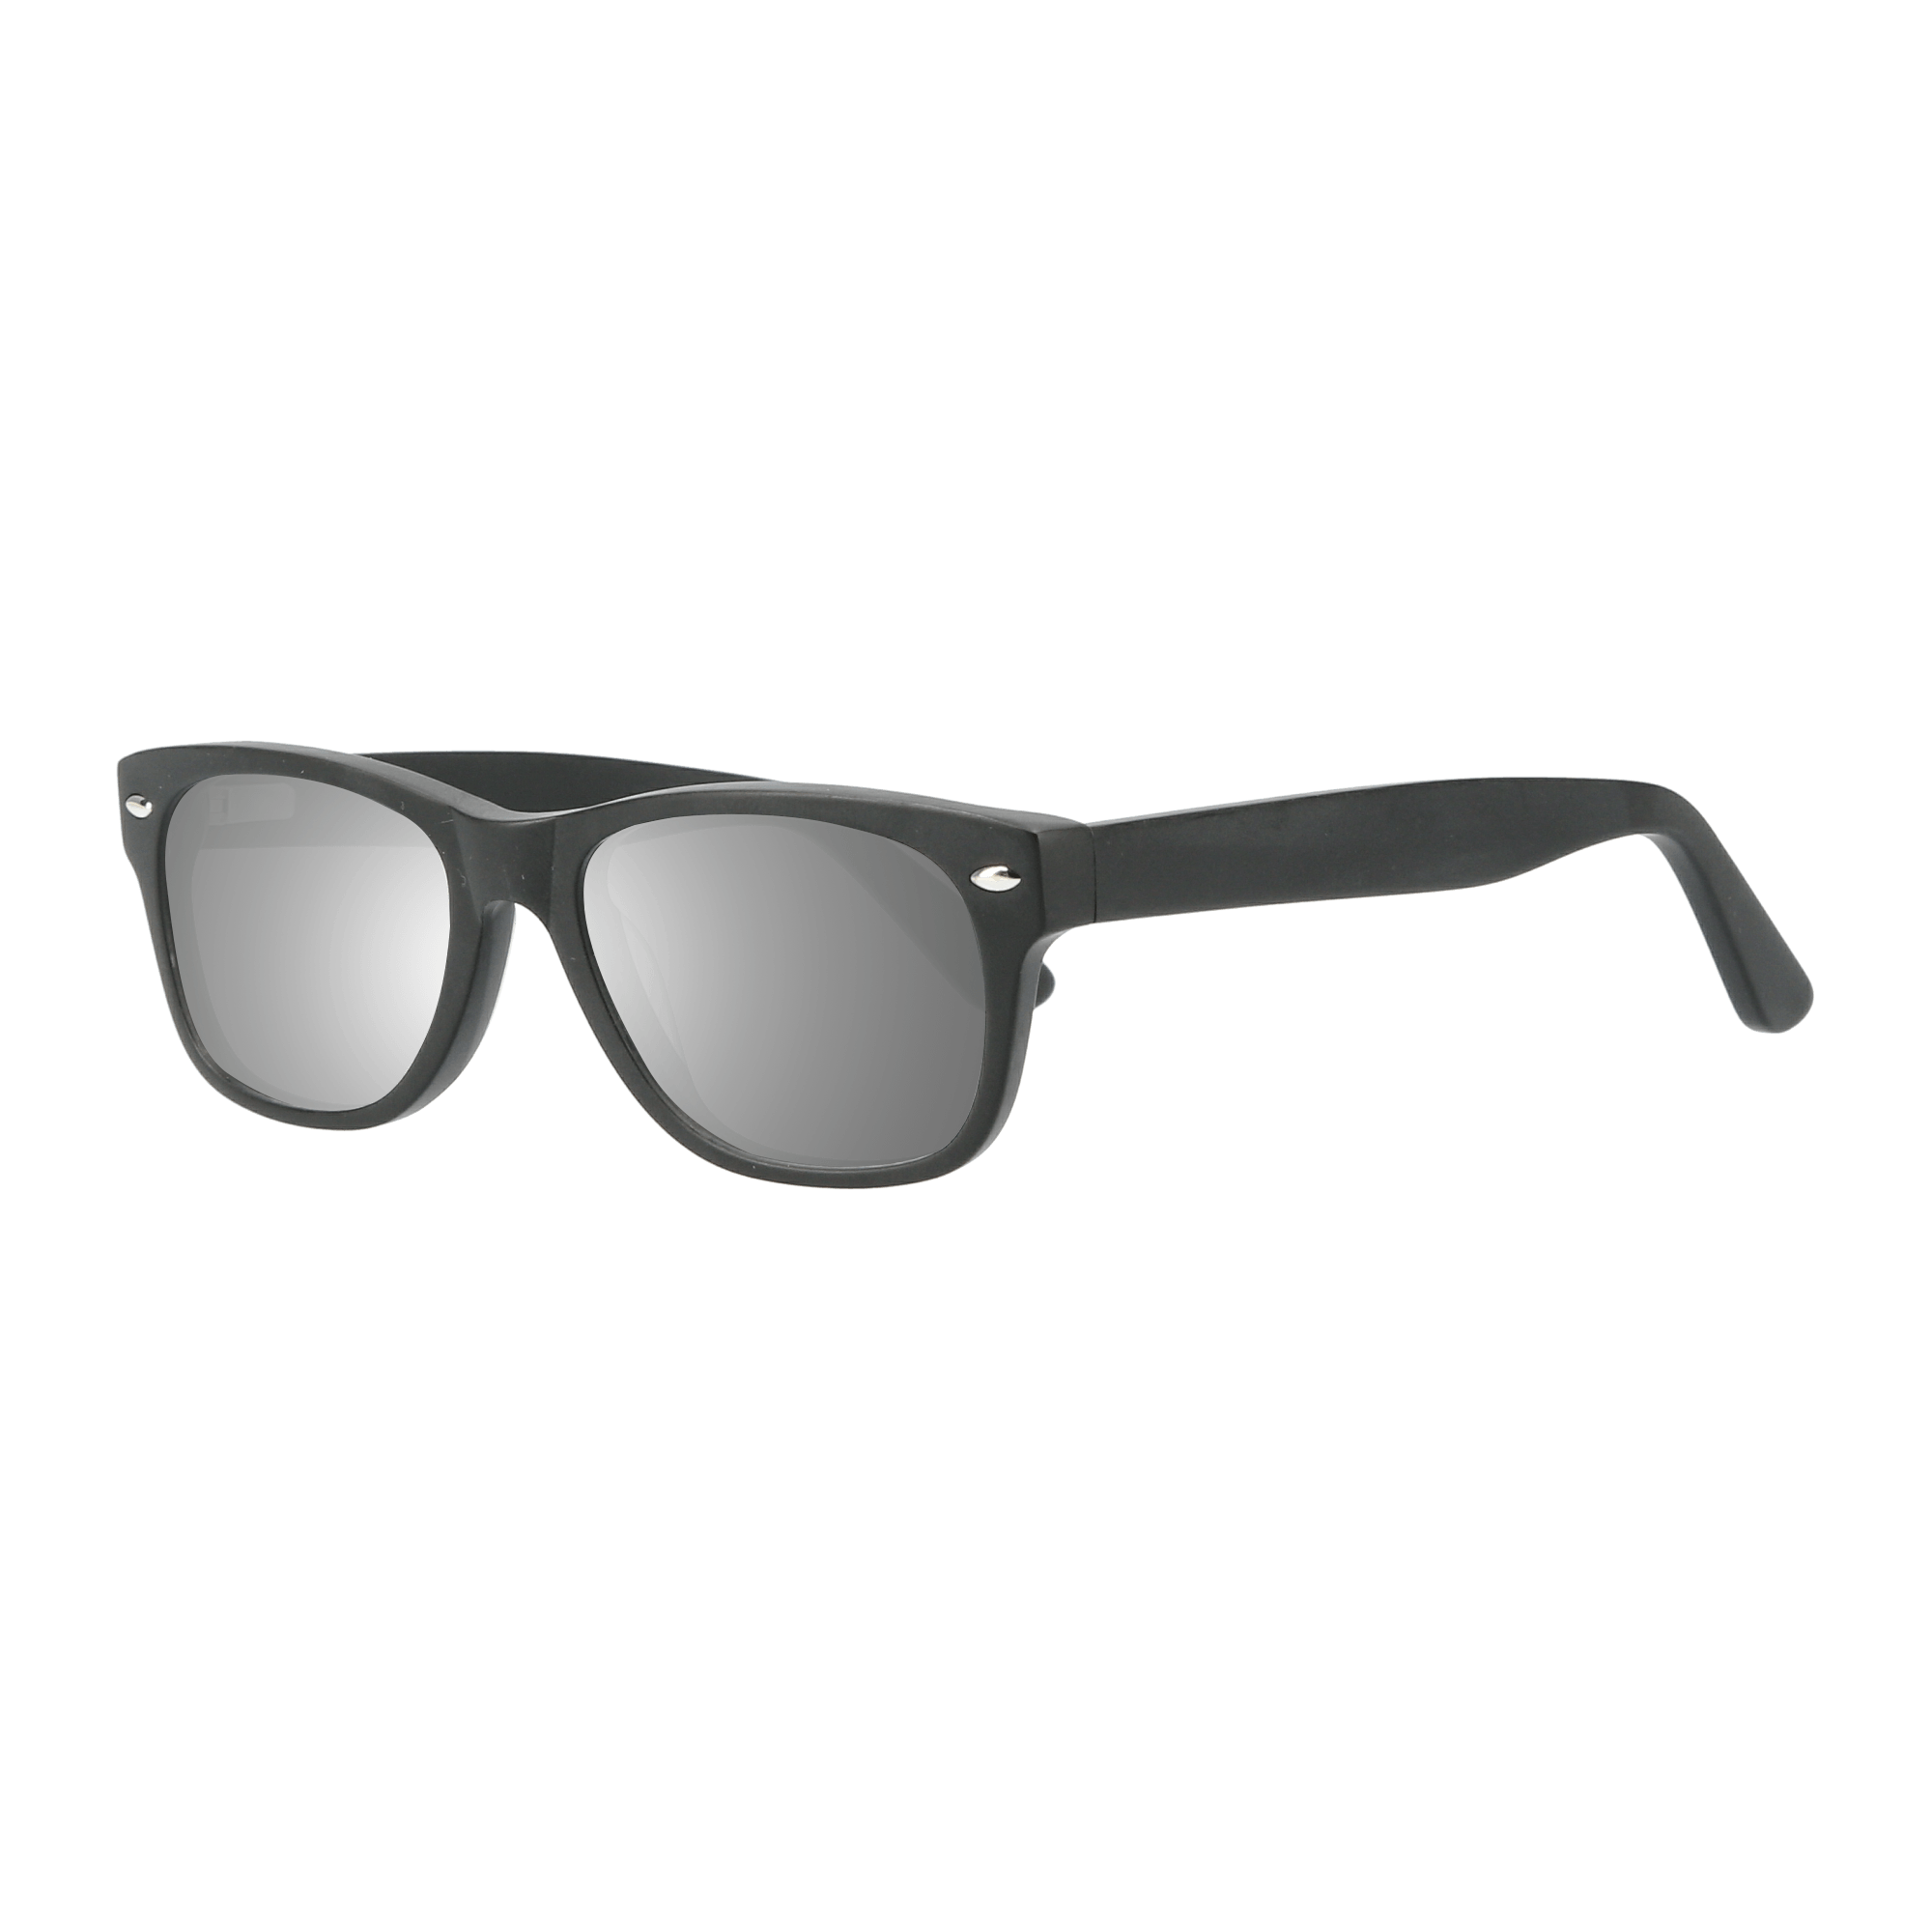 ELLIJAY - MATTE BLACK SUNGLASSES SAINT REETS